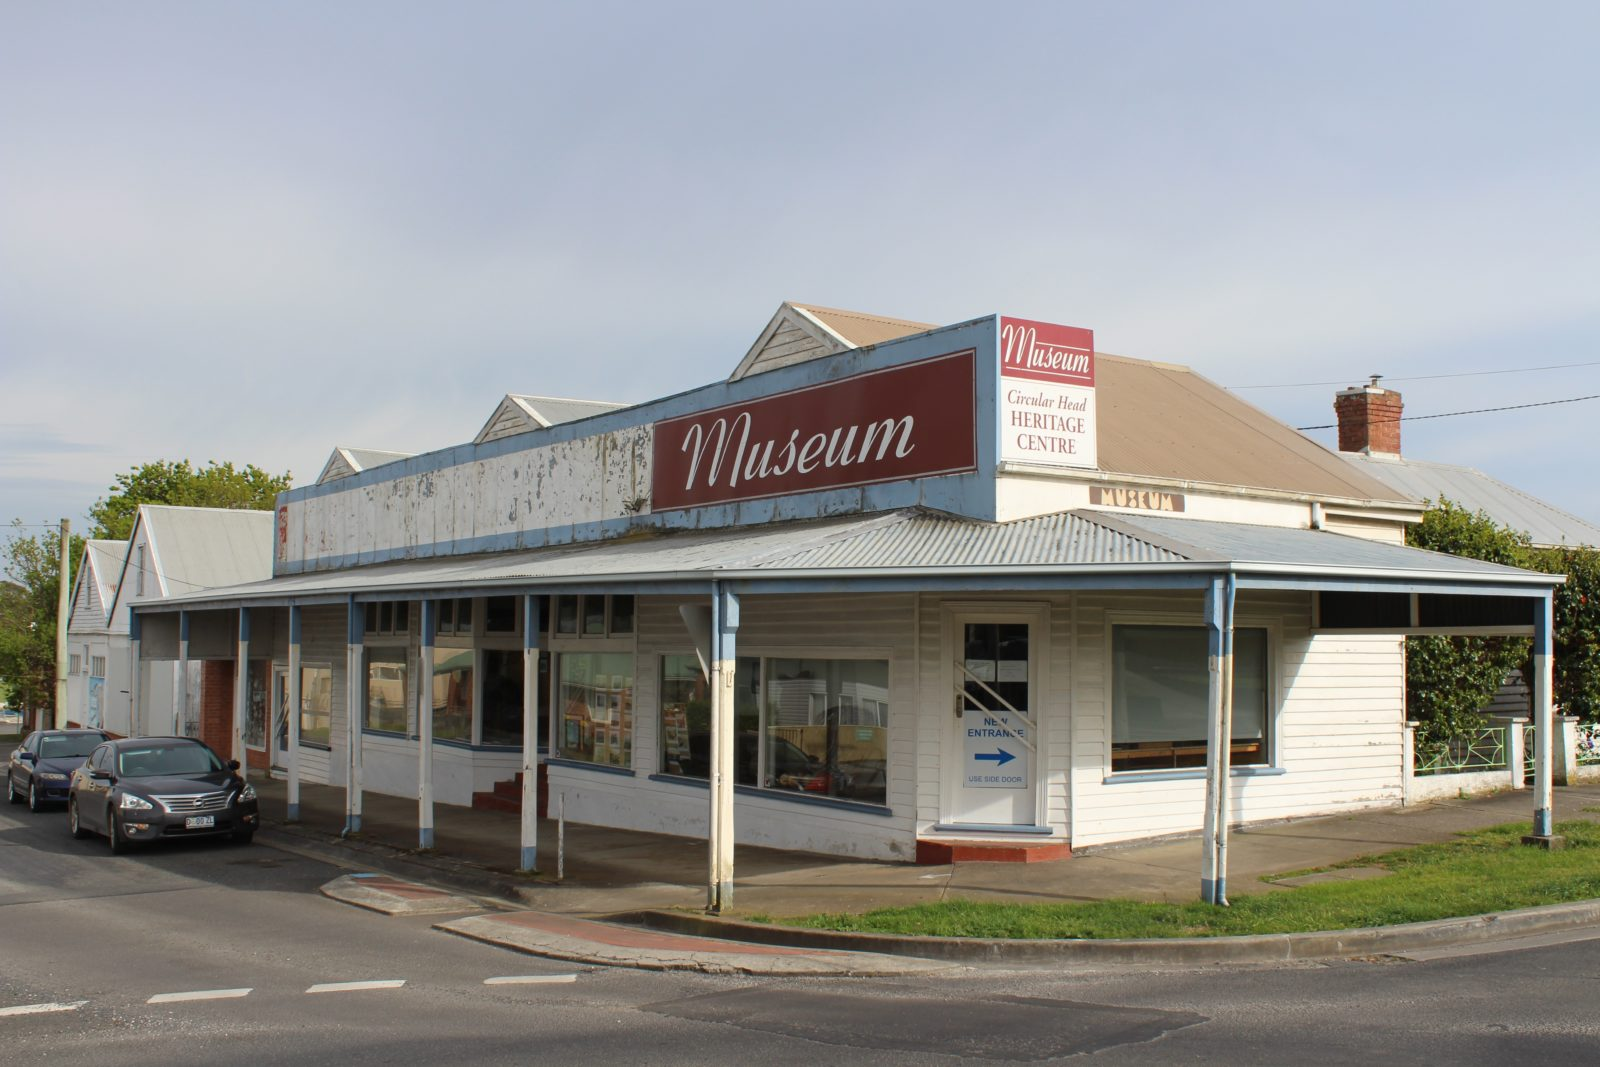 The Circular Head Heritage Centre is on the corner of King Street and Nelson Street, Smithton.